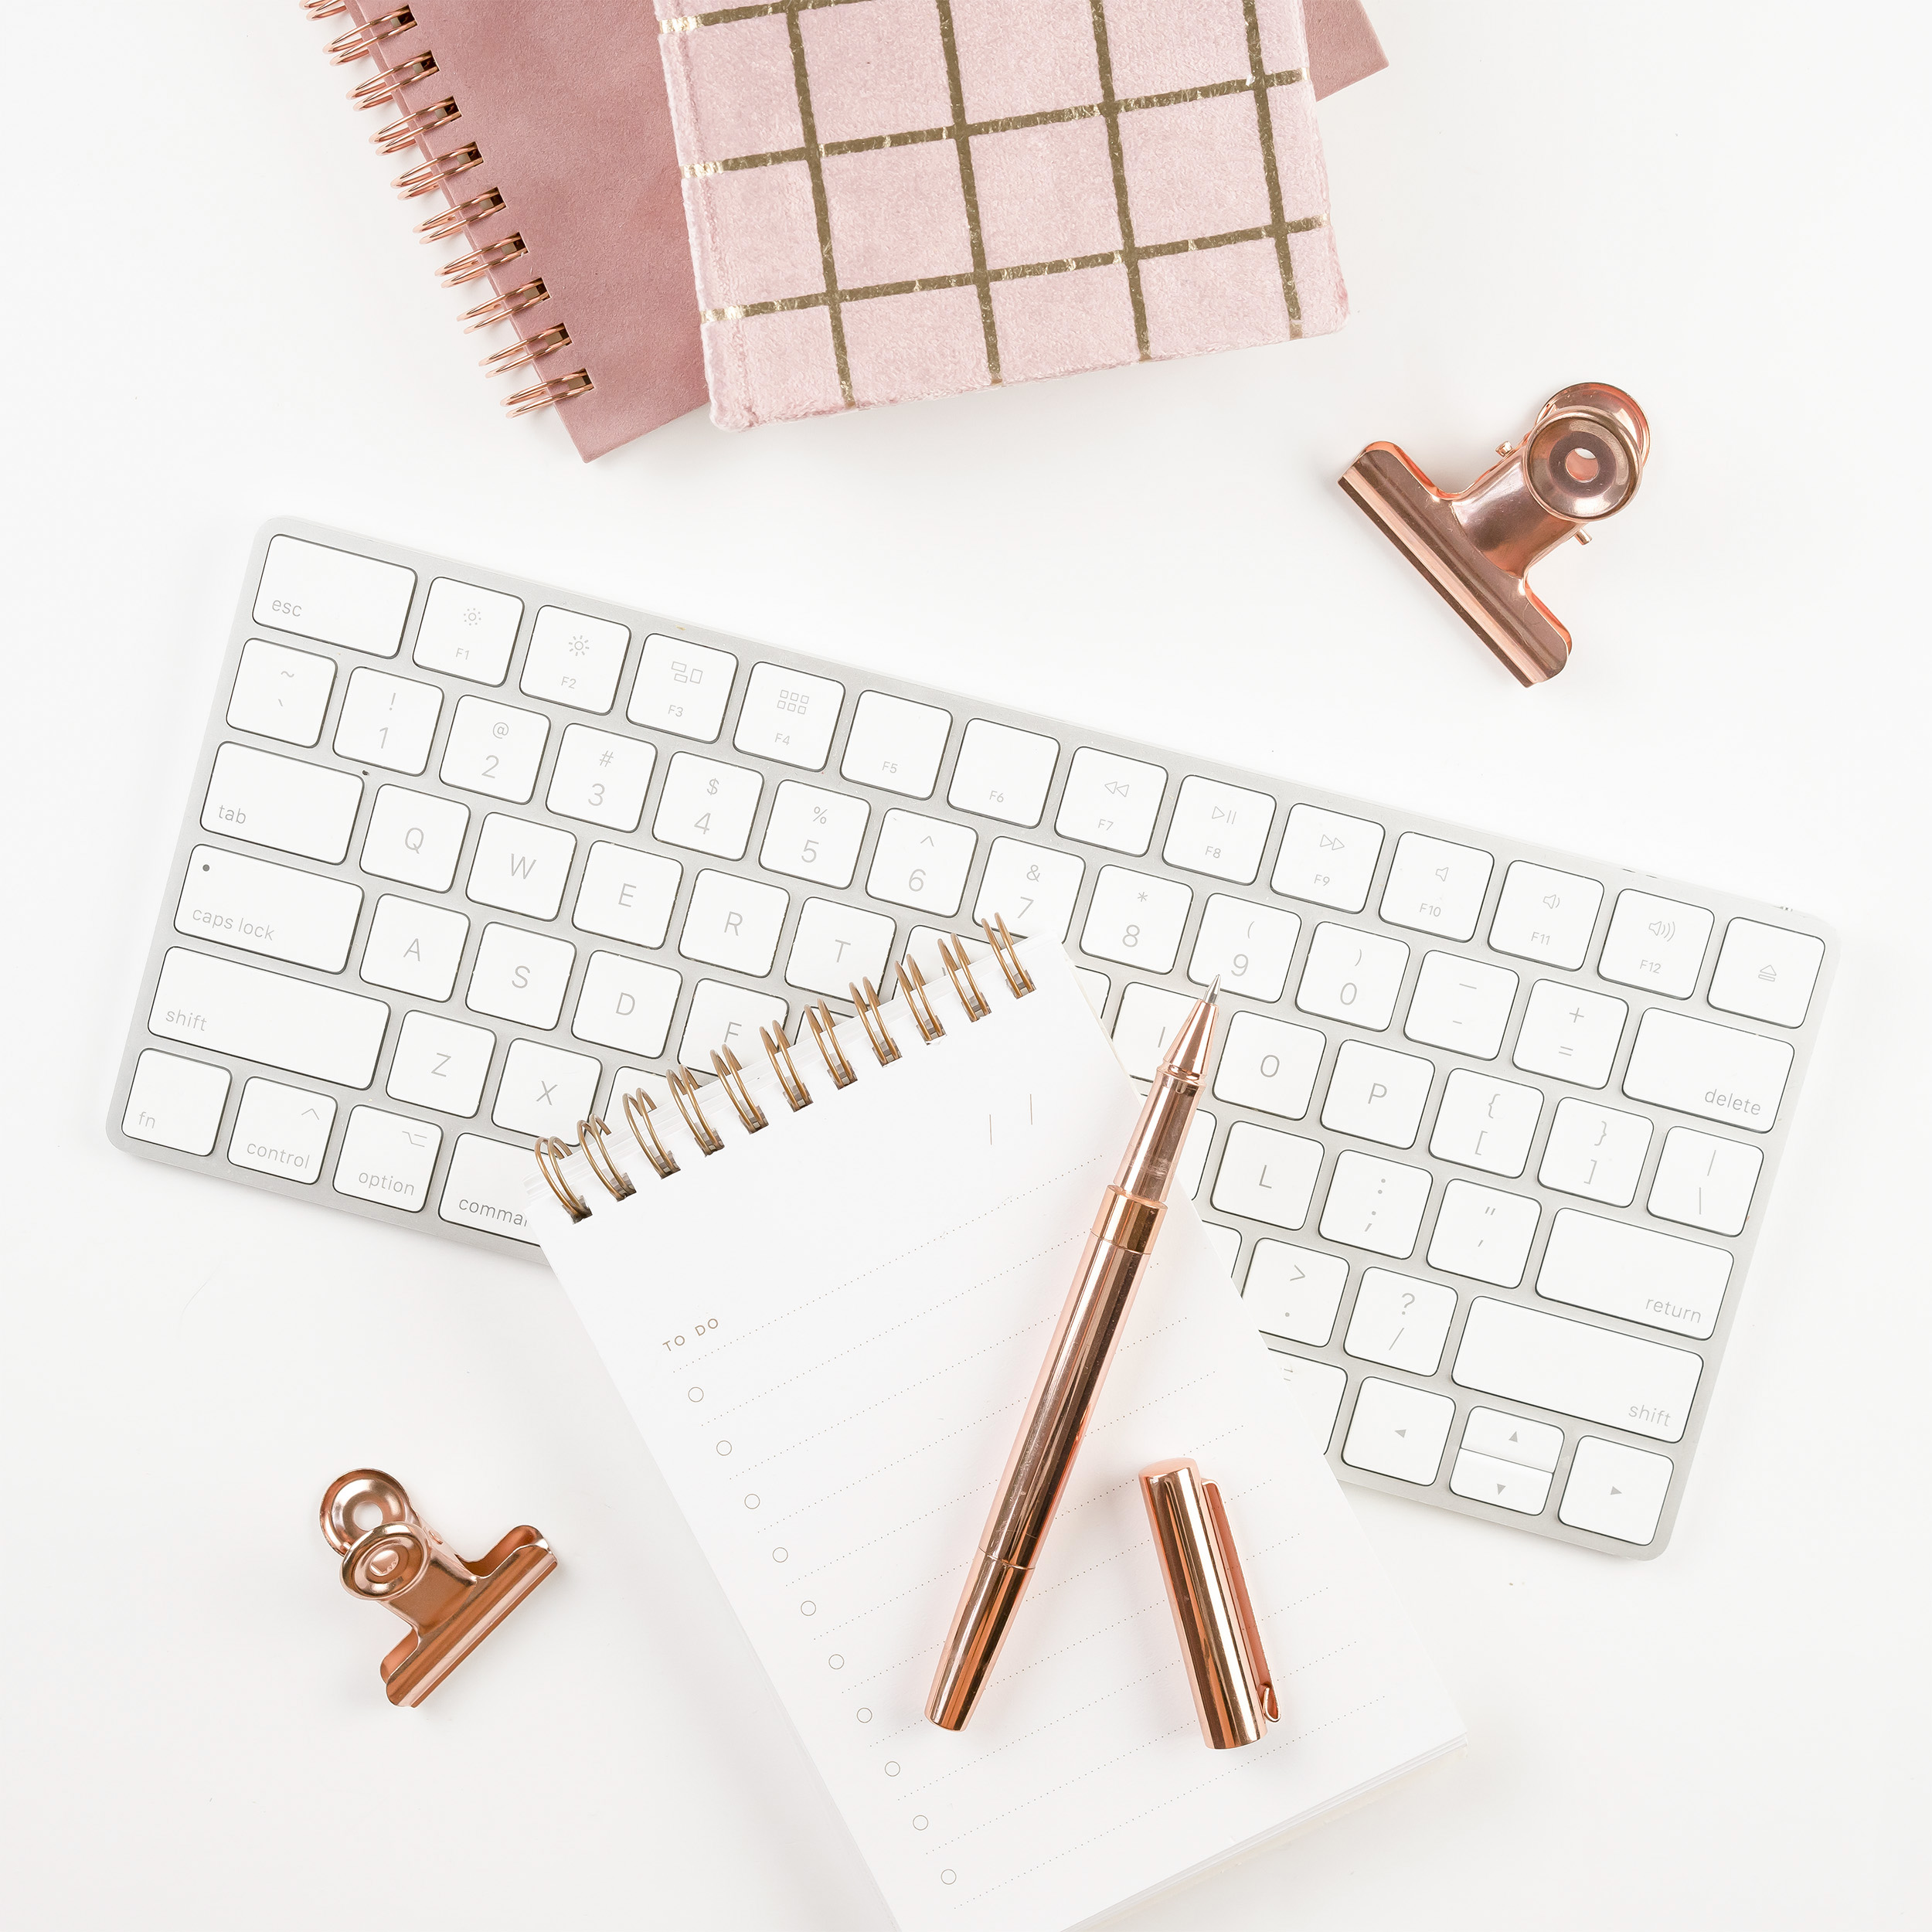 keyboard with notepad and pen